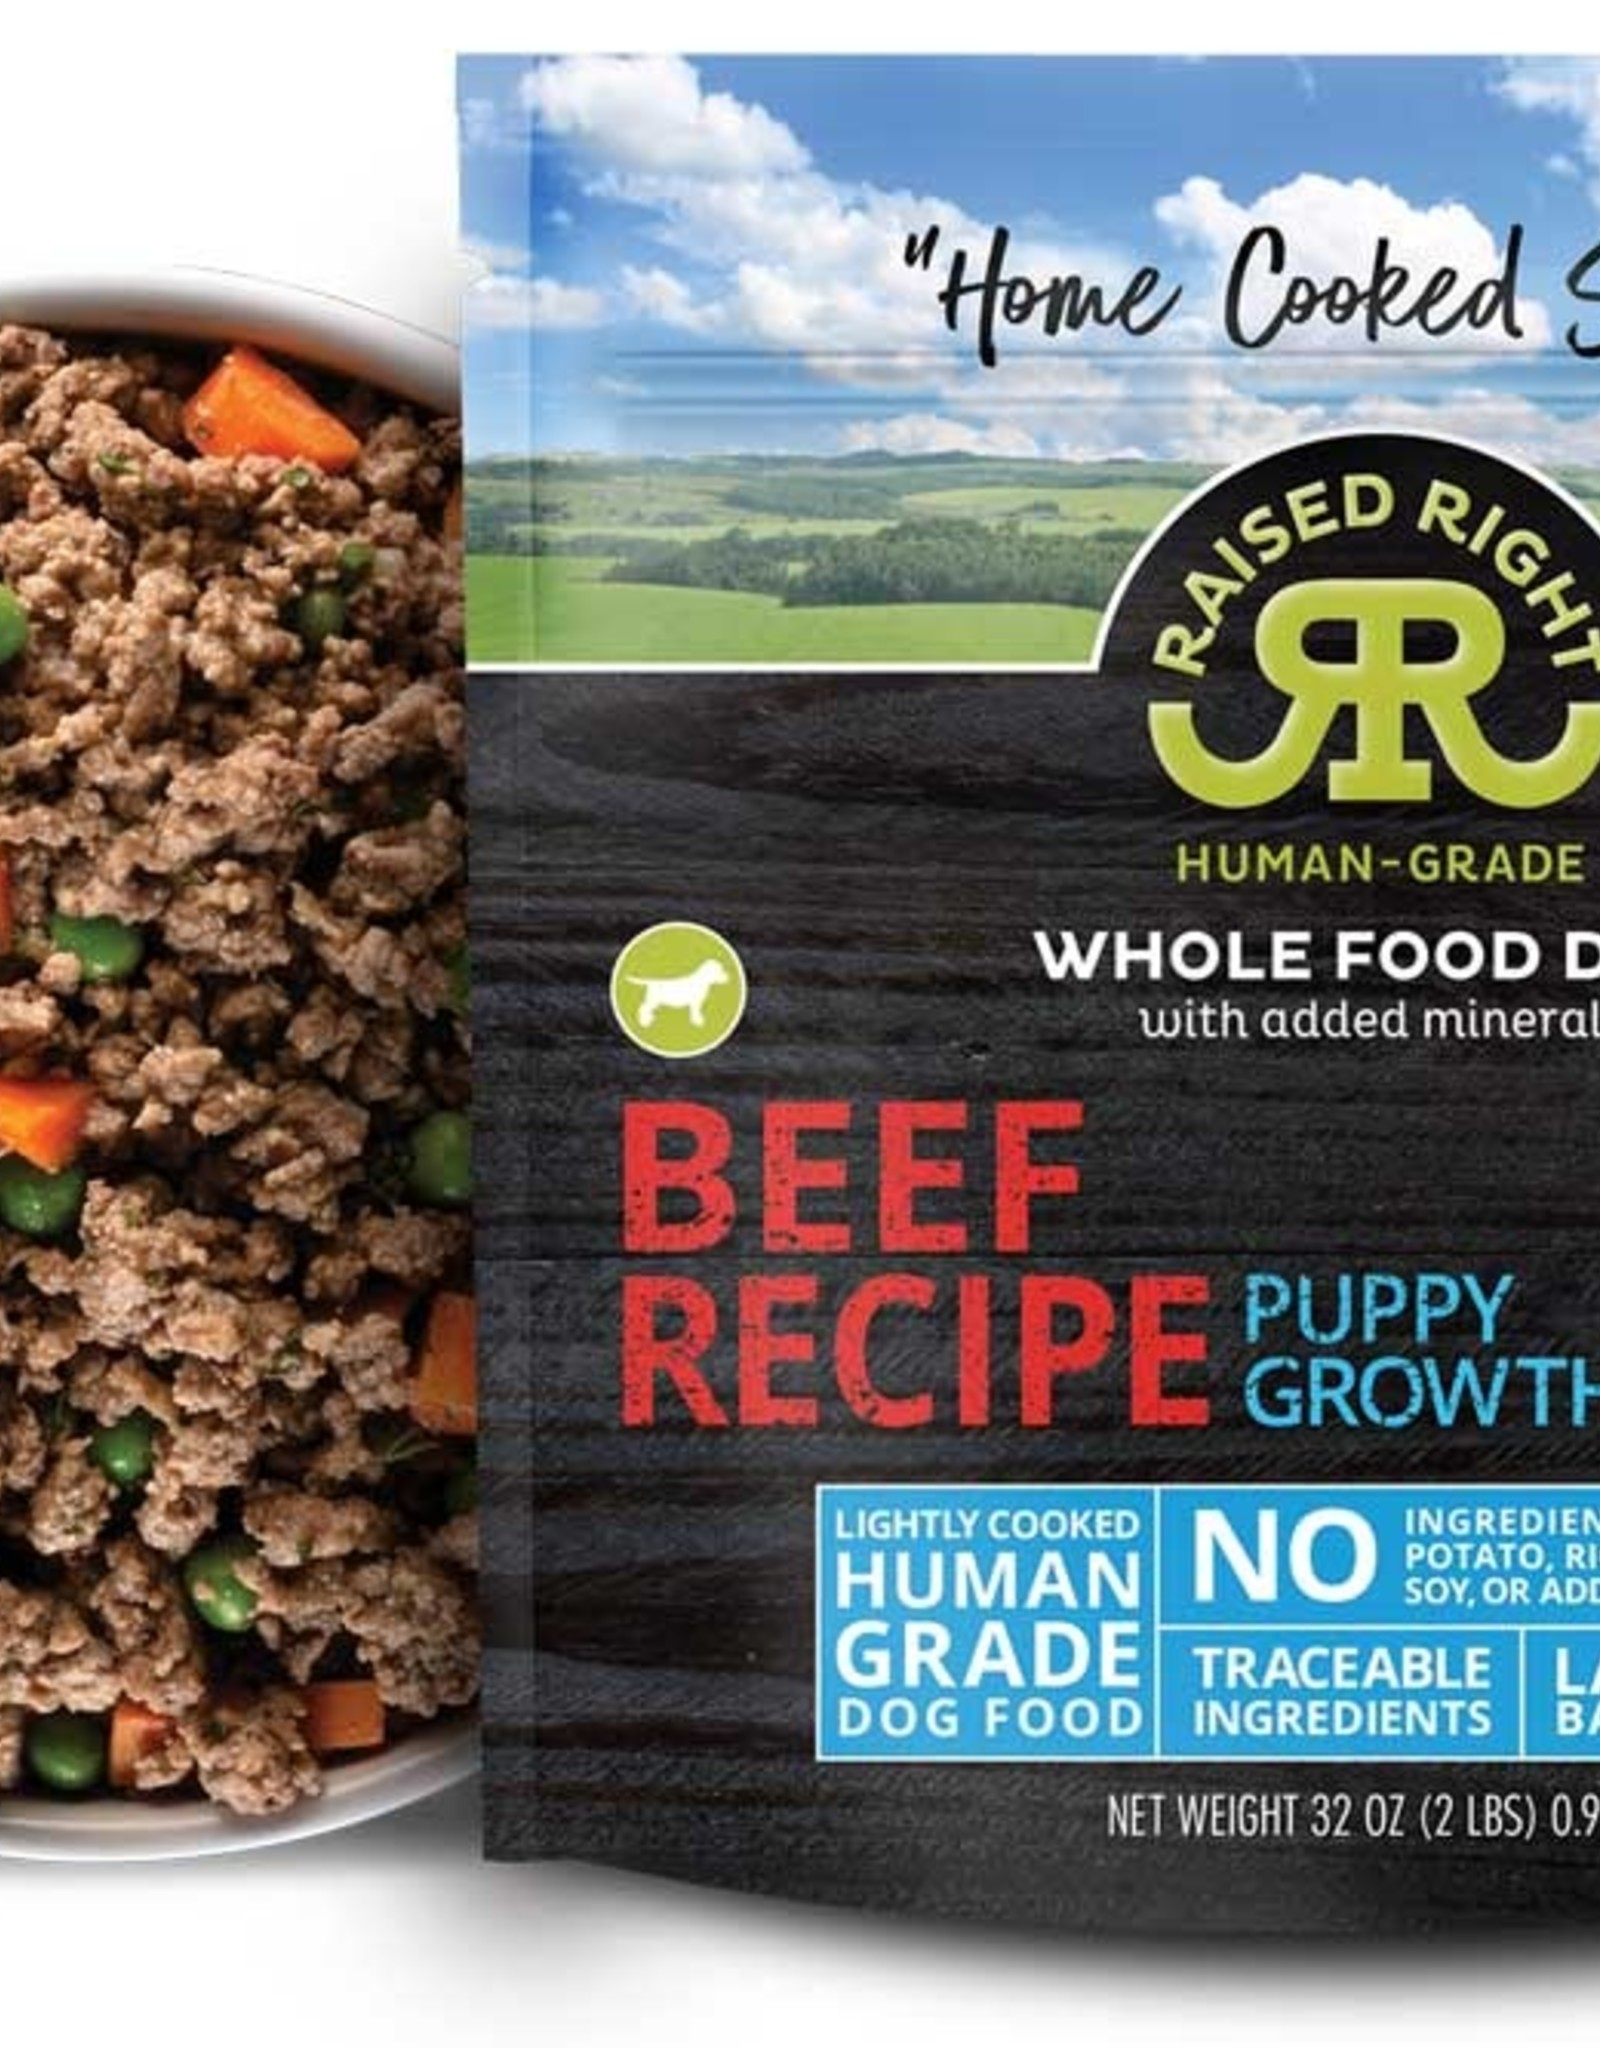 Raised Right Raised Right Beef Puppy Growth Recipe